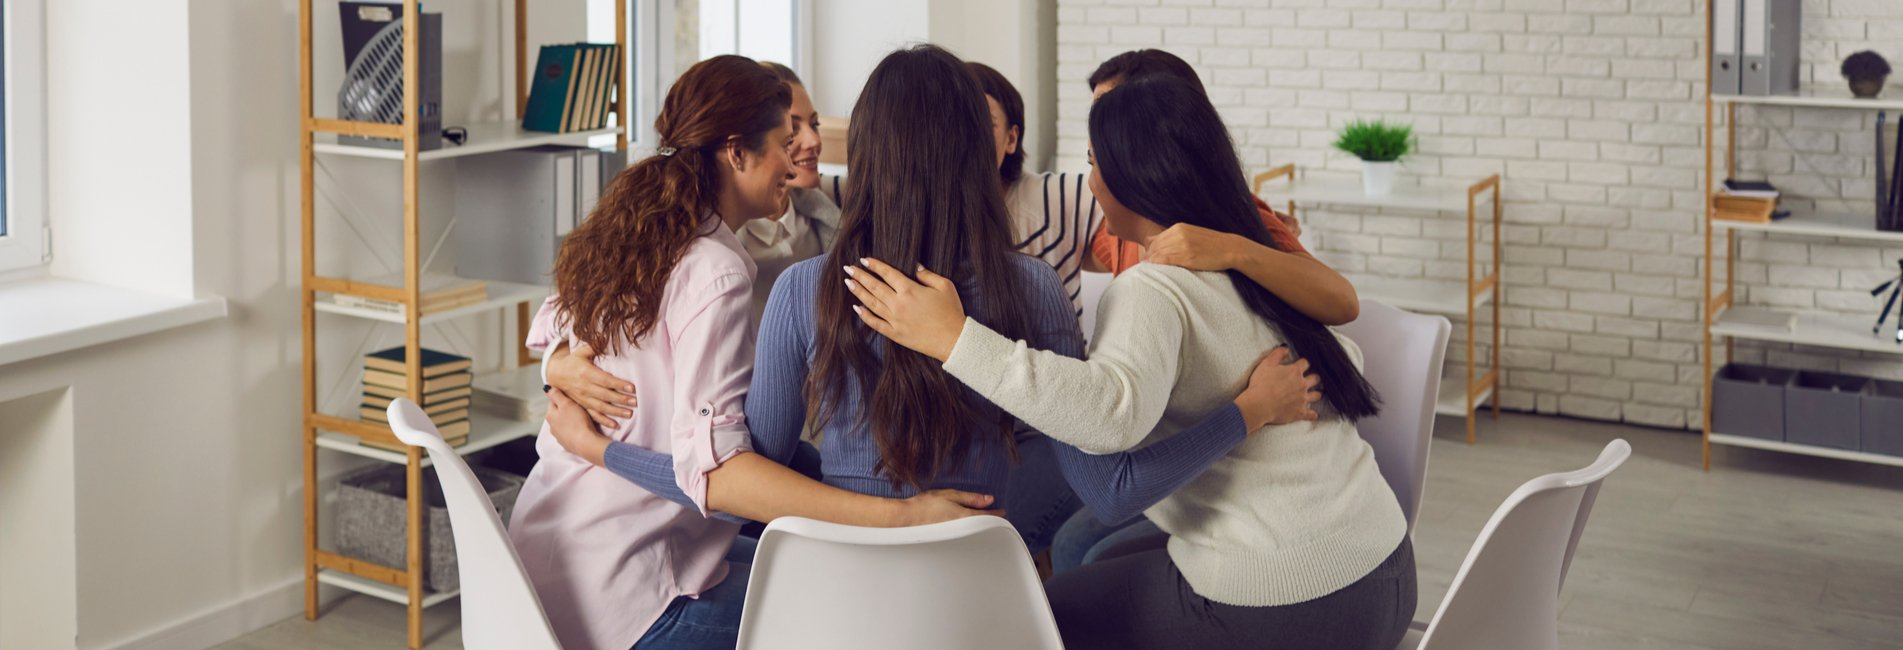 Alcohol-Related Deaths in 2020 - Resurgence - A group at an inpatient alcohol rehab center hugs each other in a circle to show support for one another's recovery journeys as they finish discussing the number of alcohol-related deaths in 2020.